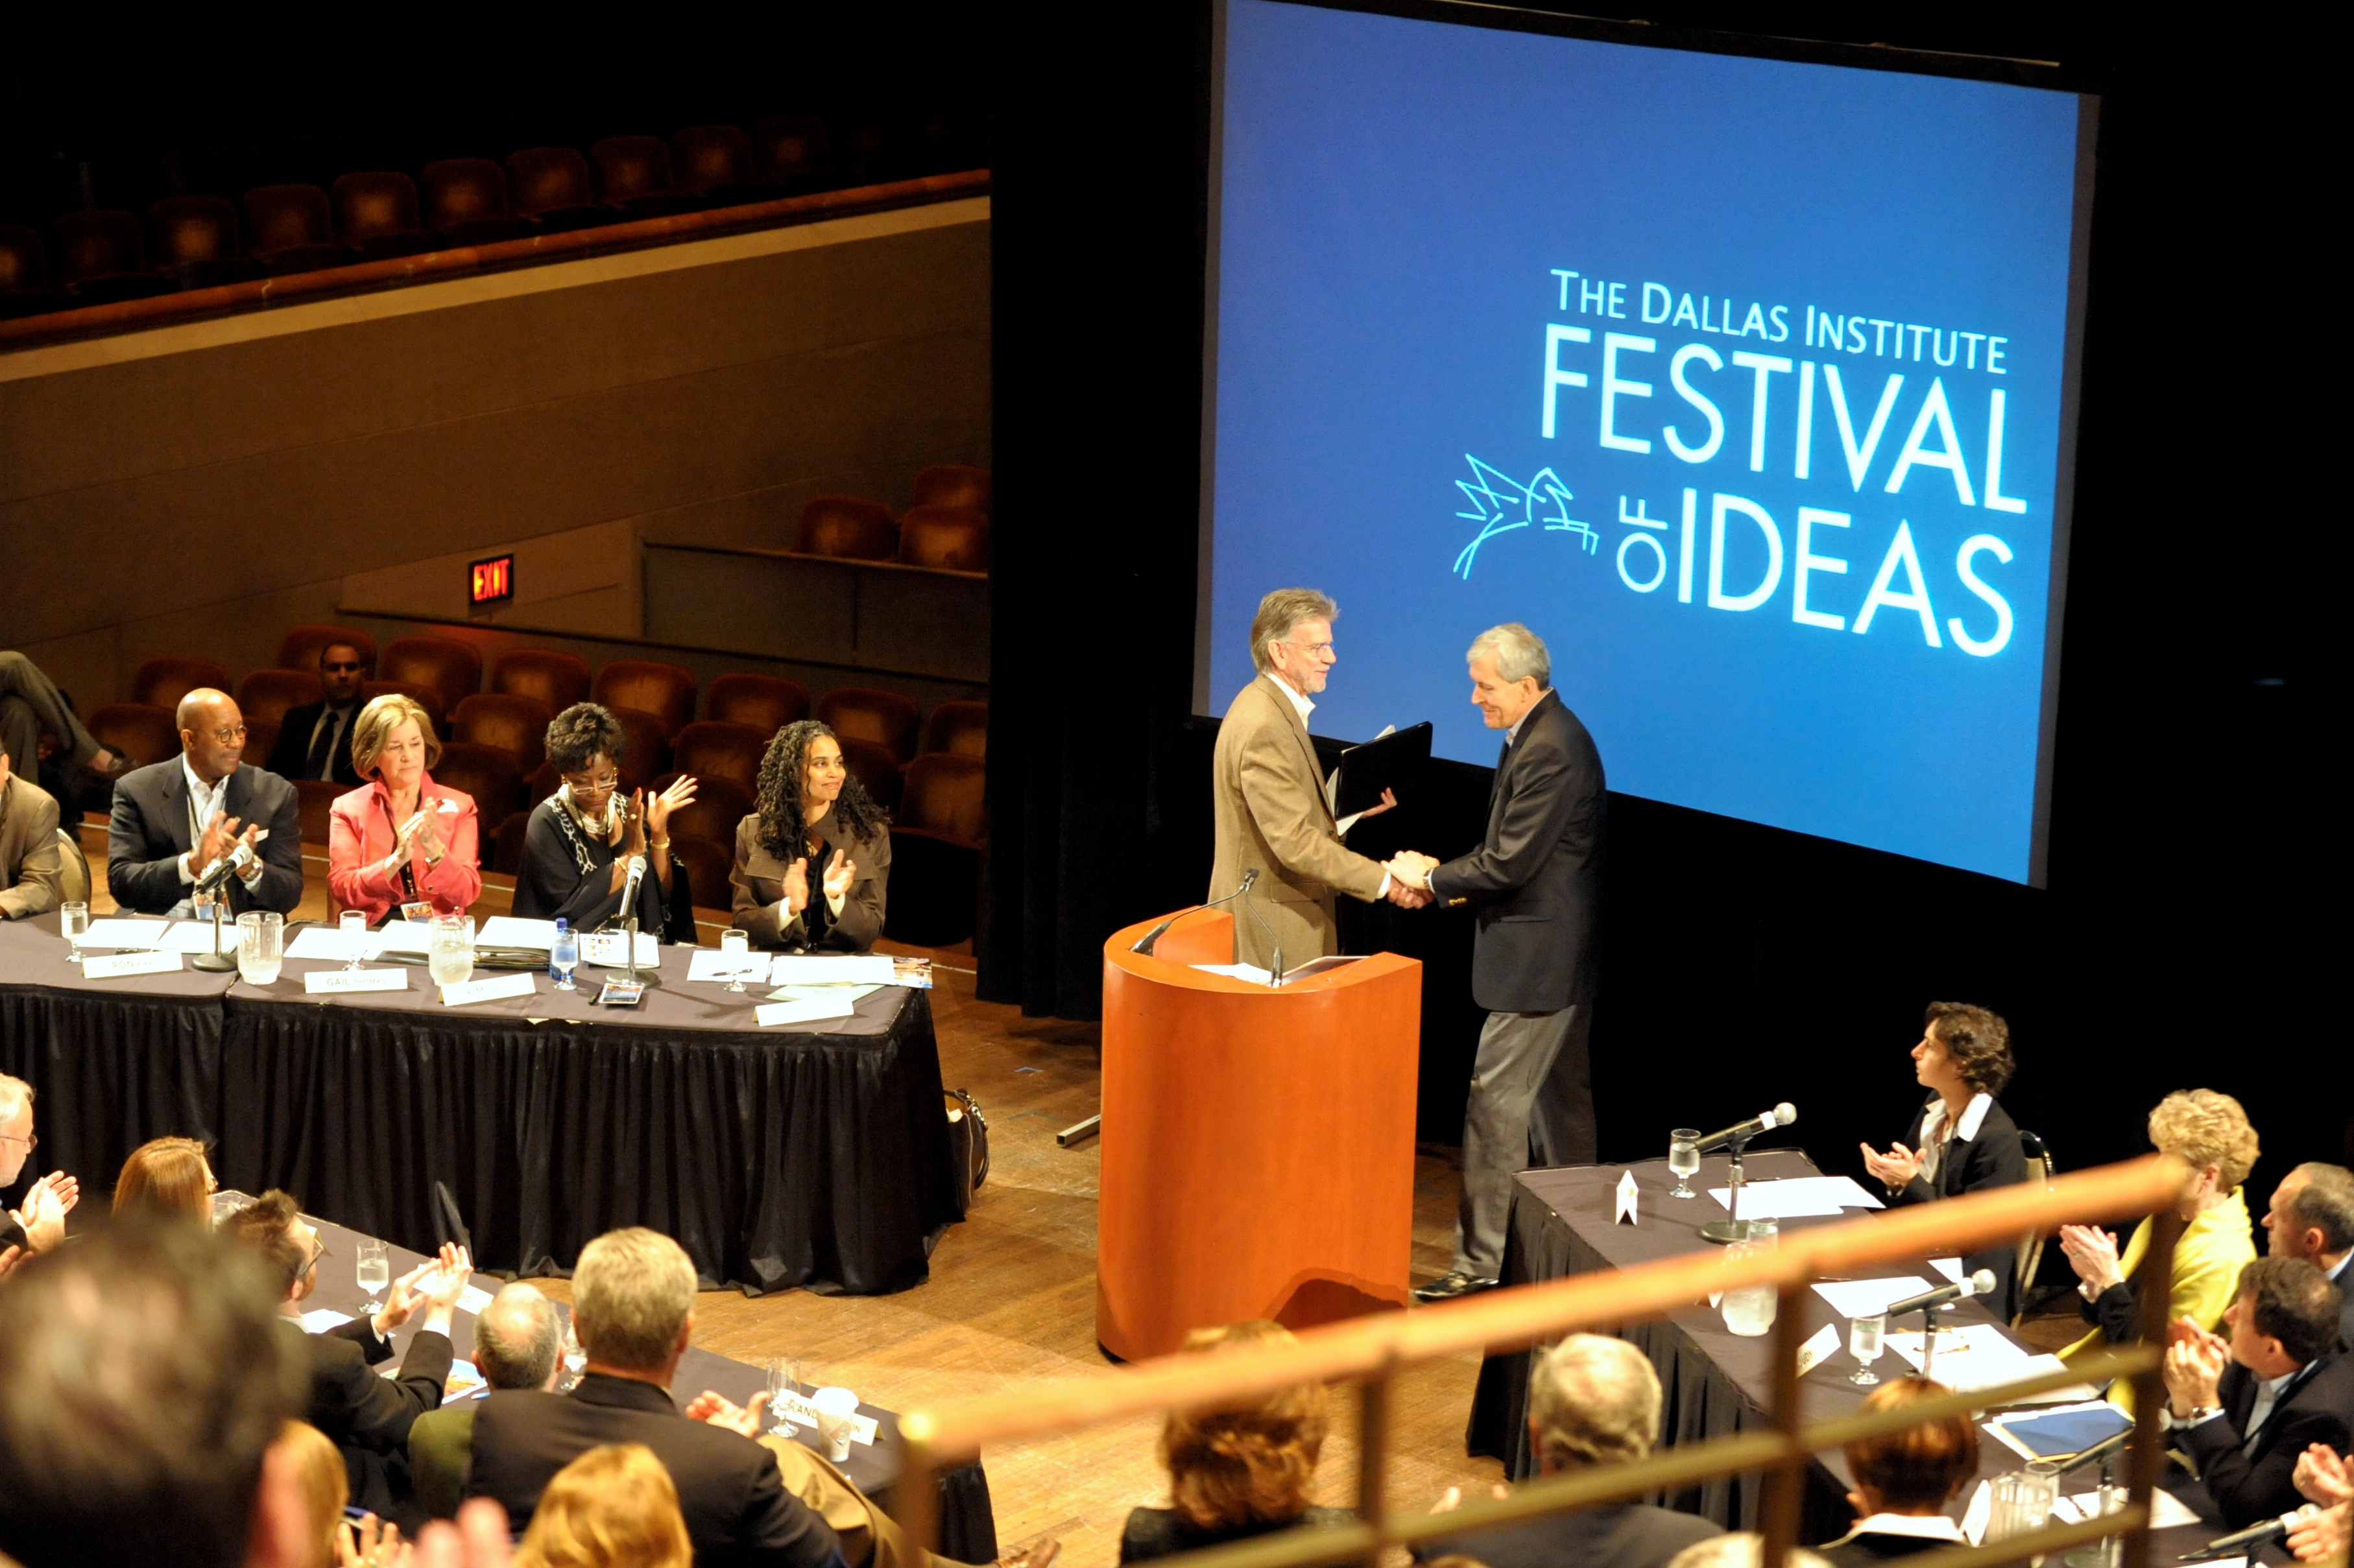 Festival of Ideas Conducted